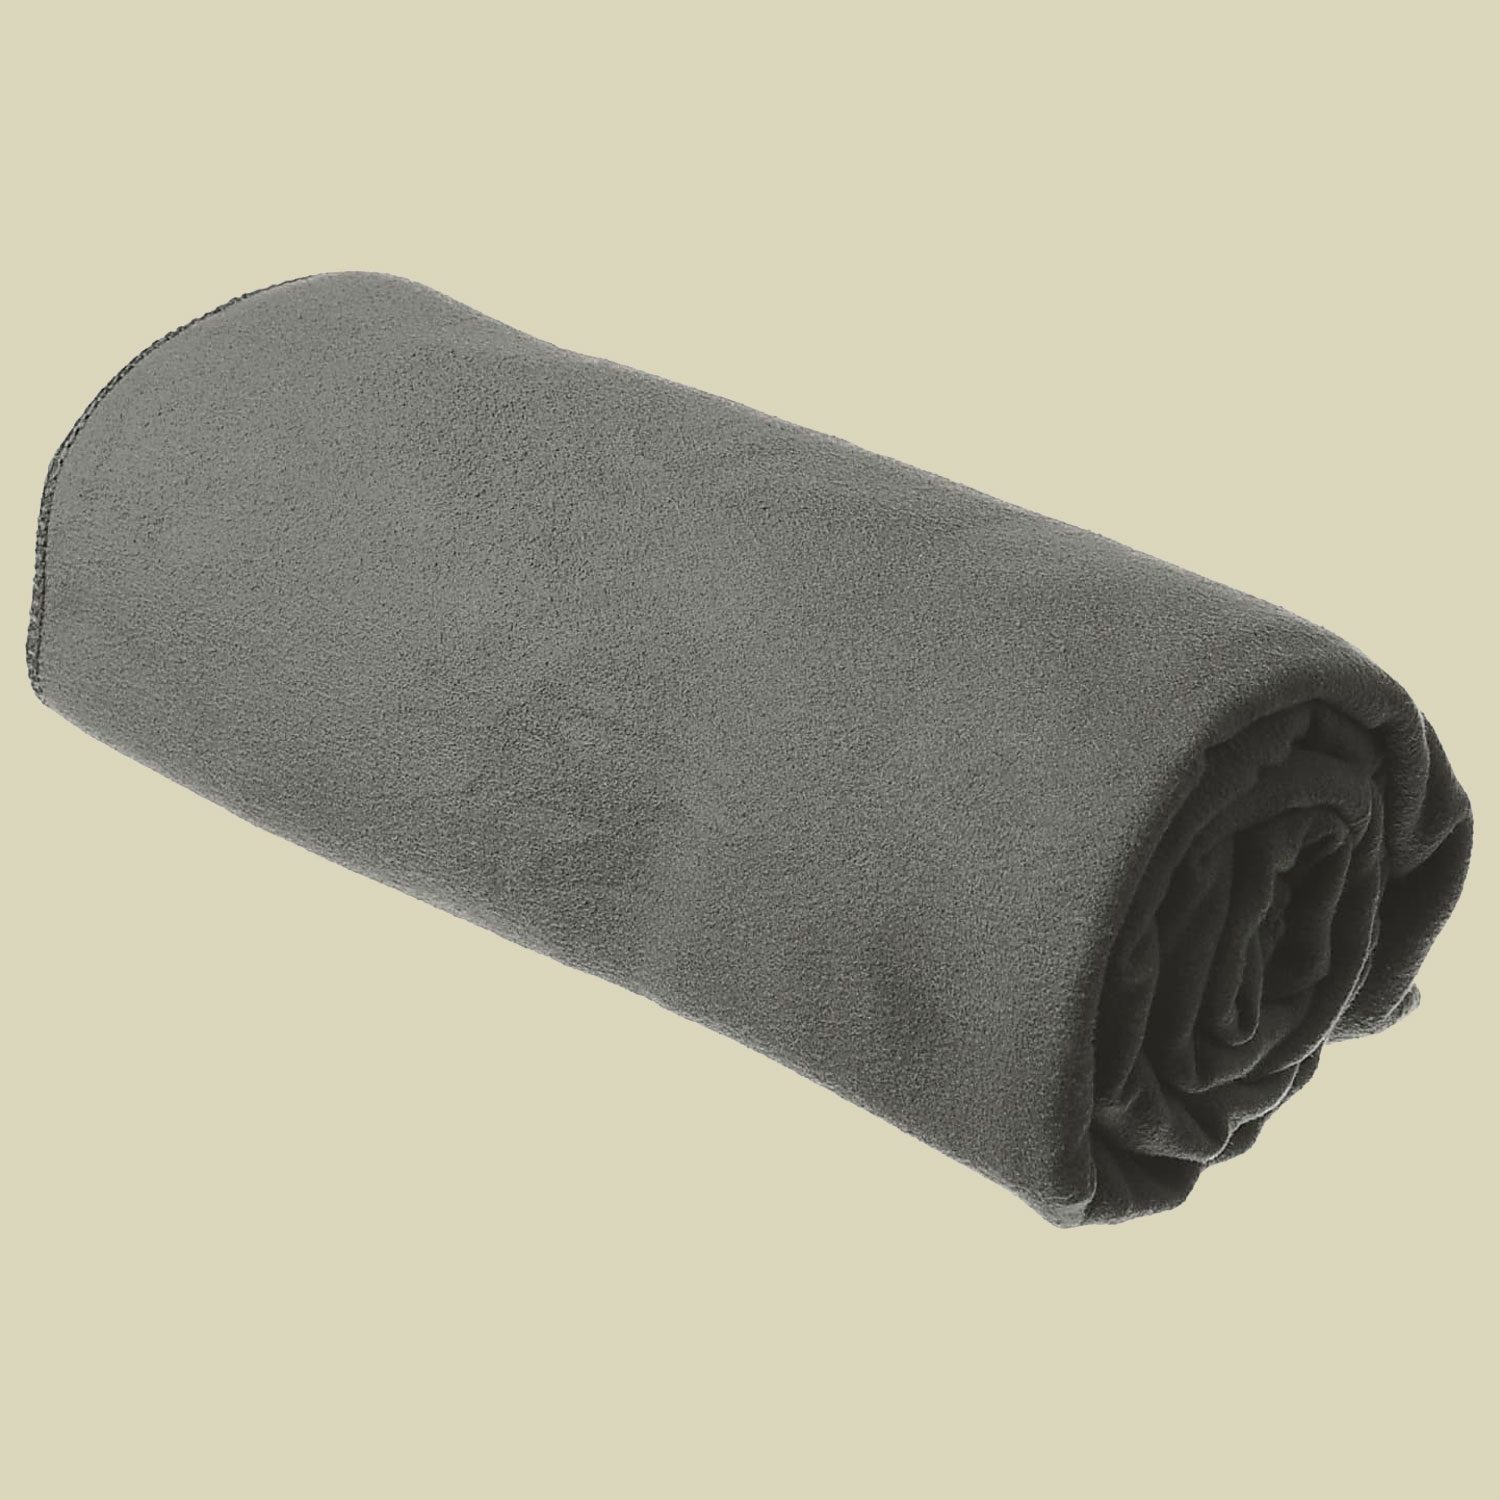 Sea to Summit Drylite Towel Mikrofaser Handtuch Größe XS grey von Sea to Summit